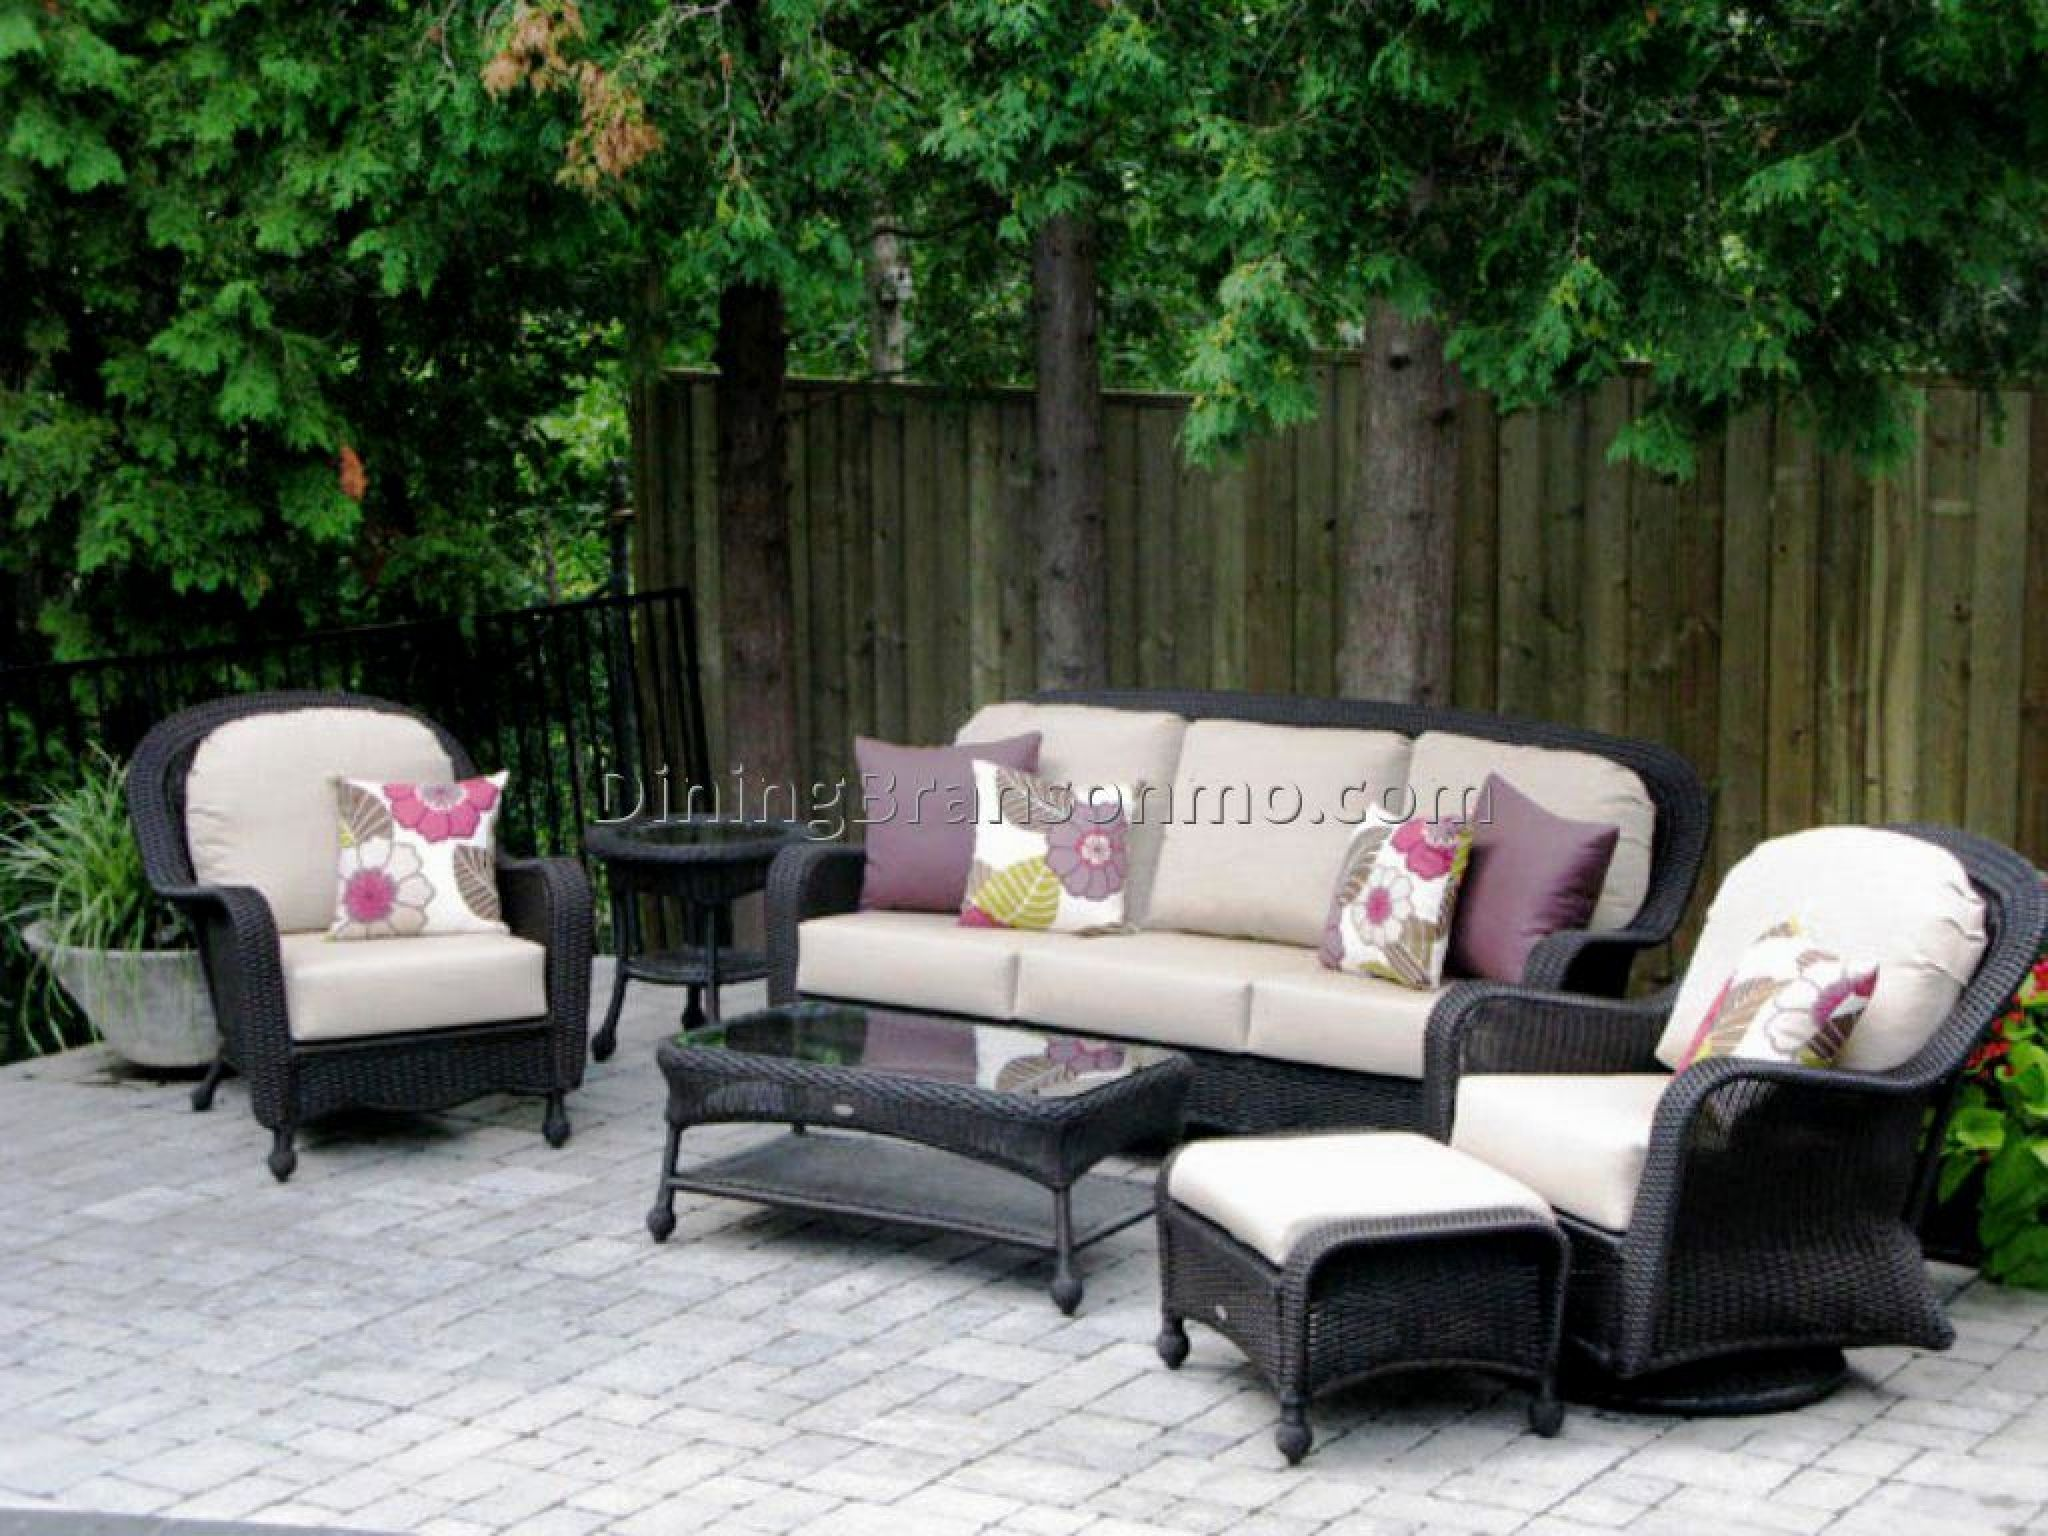 Hampton Bay Outdoor Furniture Covers Interior Paint Color Schemes Ch Big Lots Patio Furniture Comfortable Patio Furniture Clearance Patio Furniture